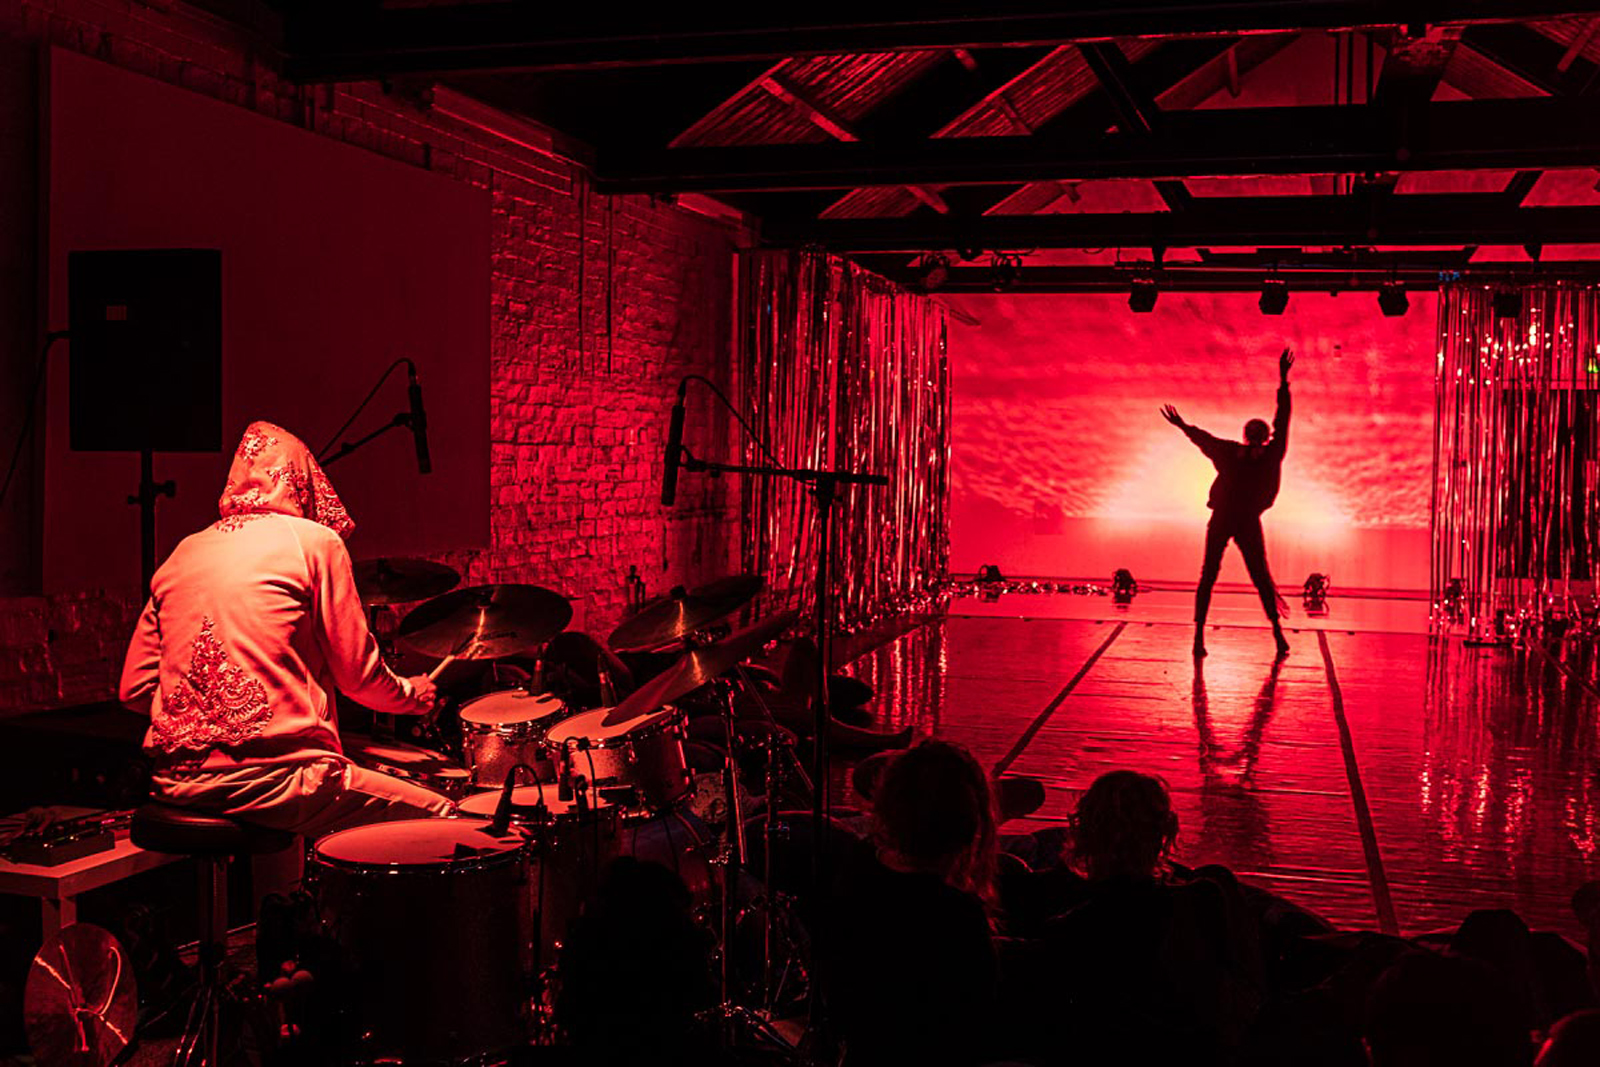 Photograph taken at performance of Spirit Compass at Tramway, Glasgow. Image features performer and musician performing simultaneously to a small, intimate sized audience. Photo by Brian Hartley.